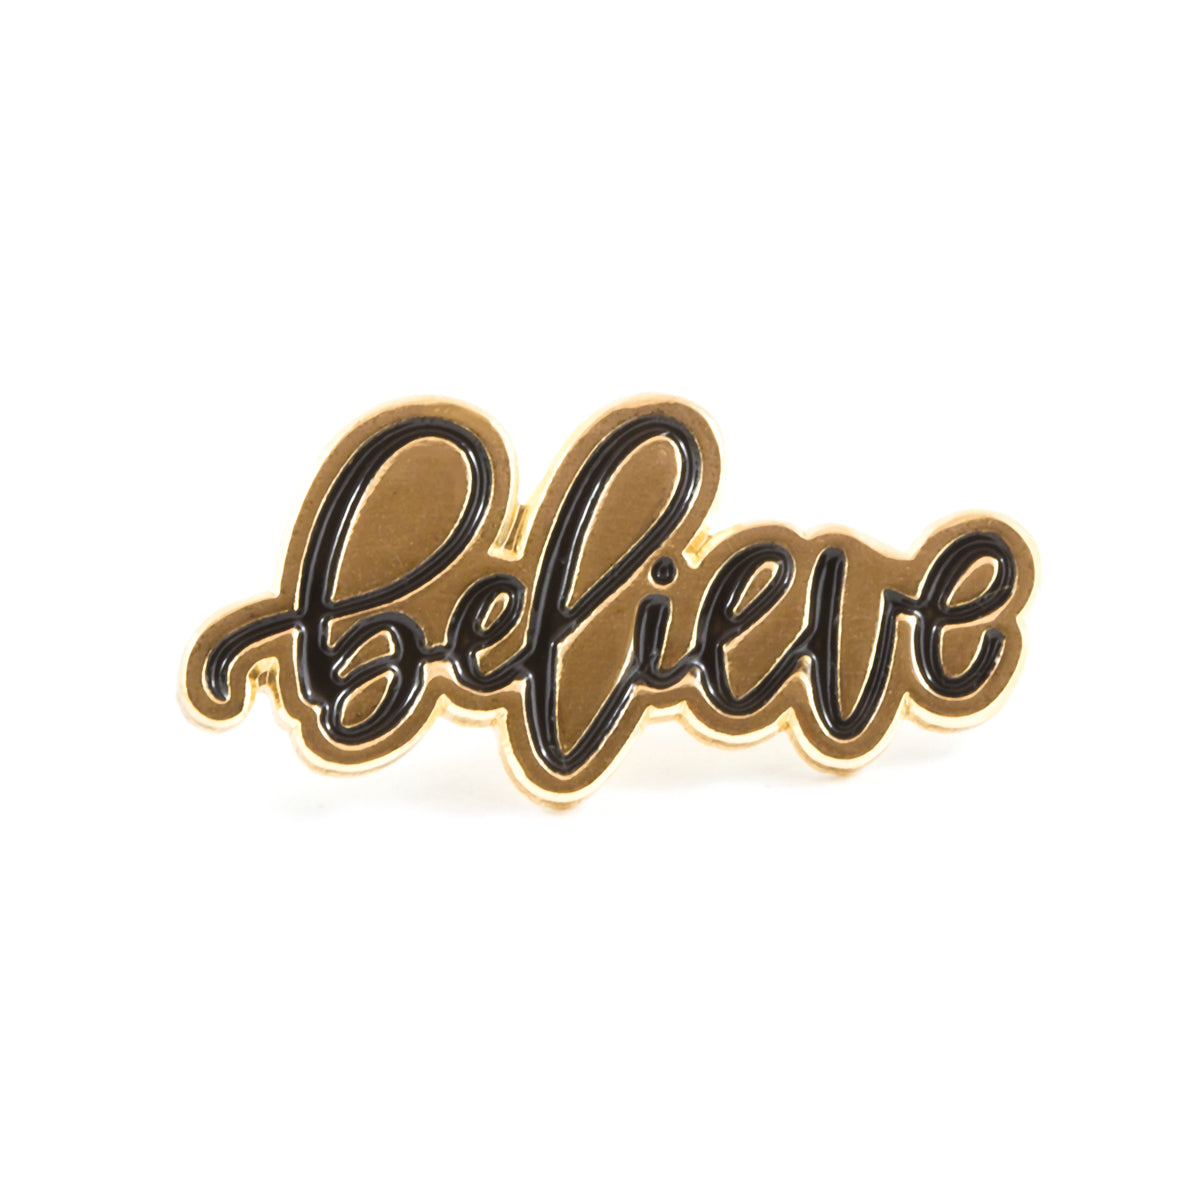 Believe Pins